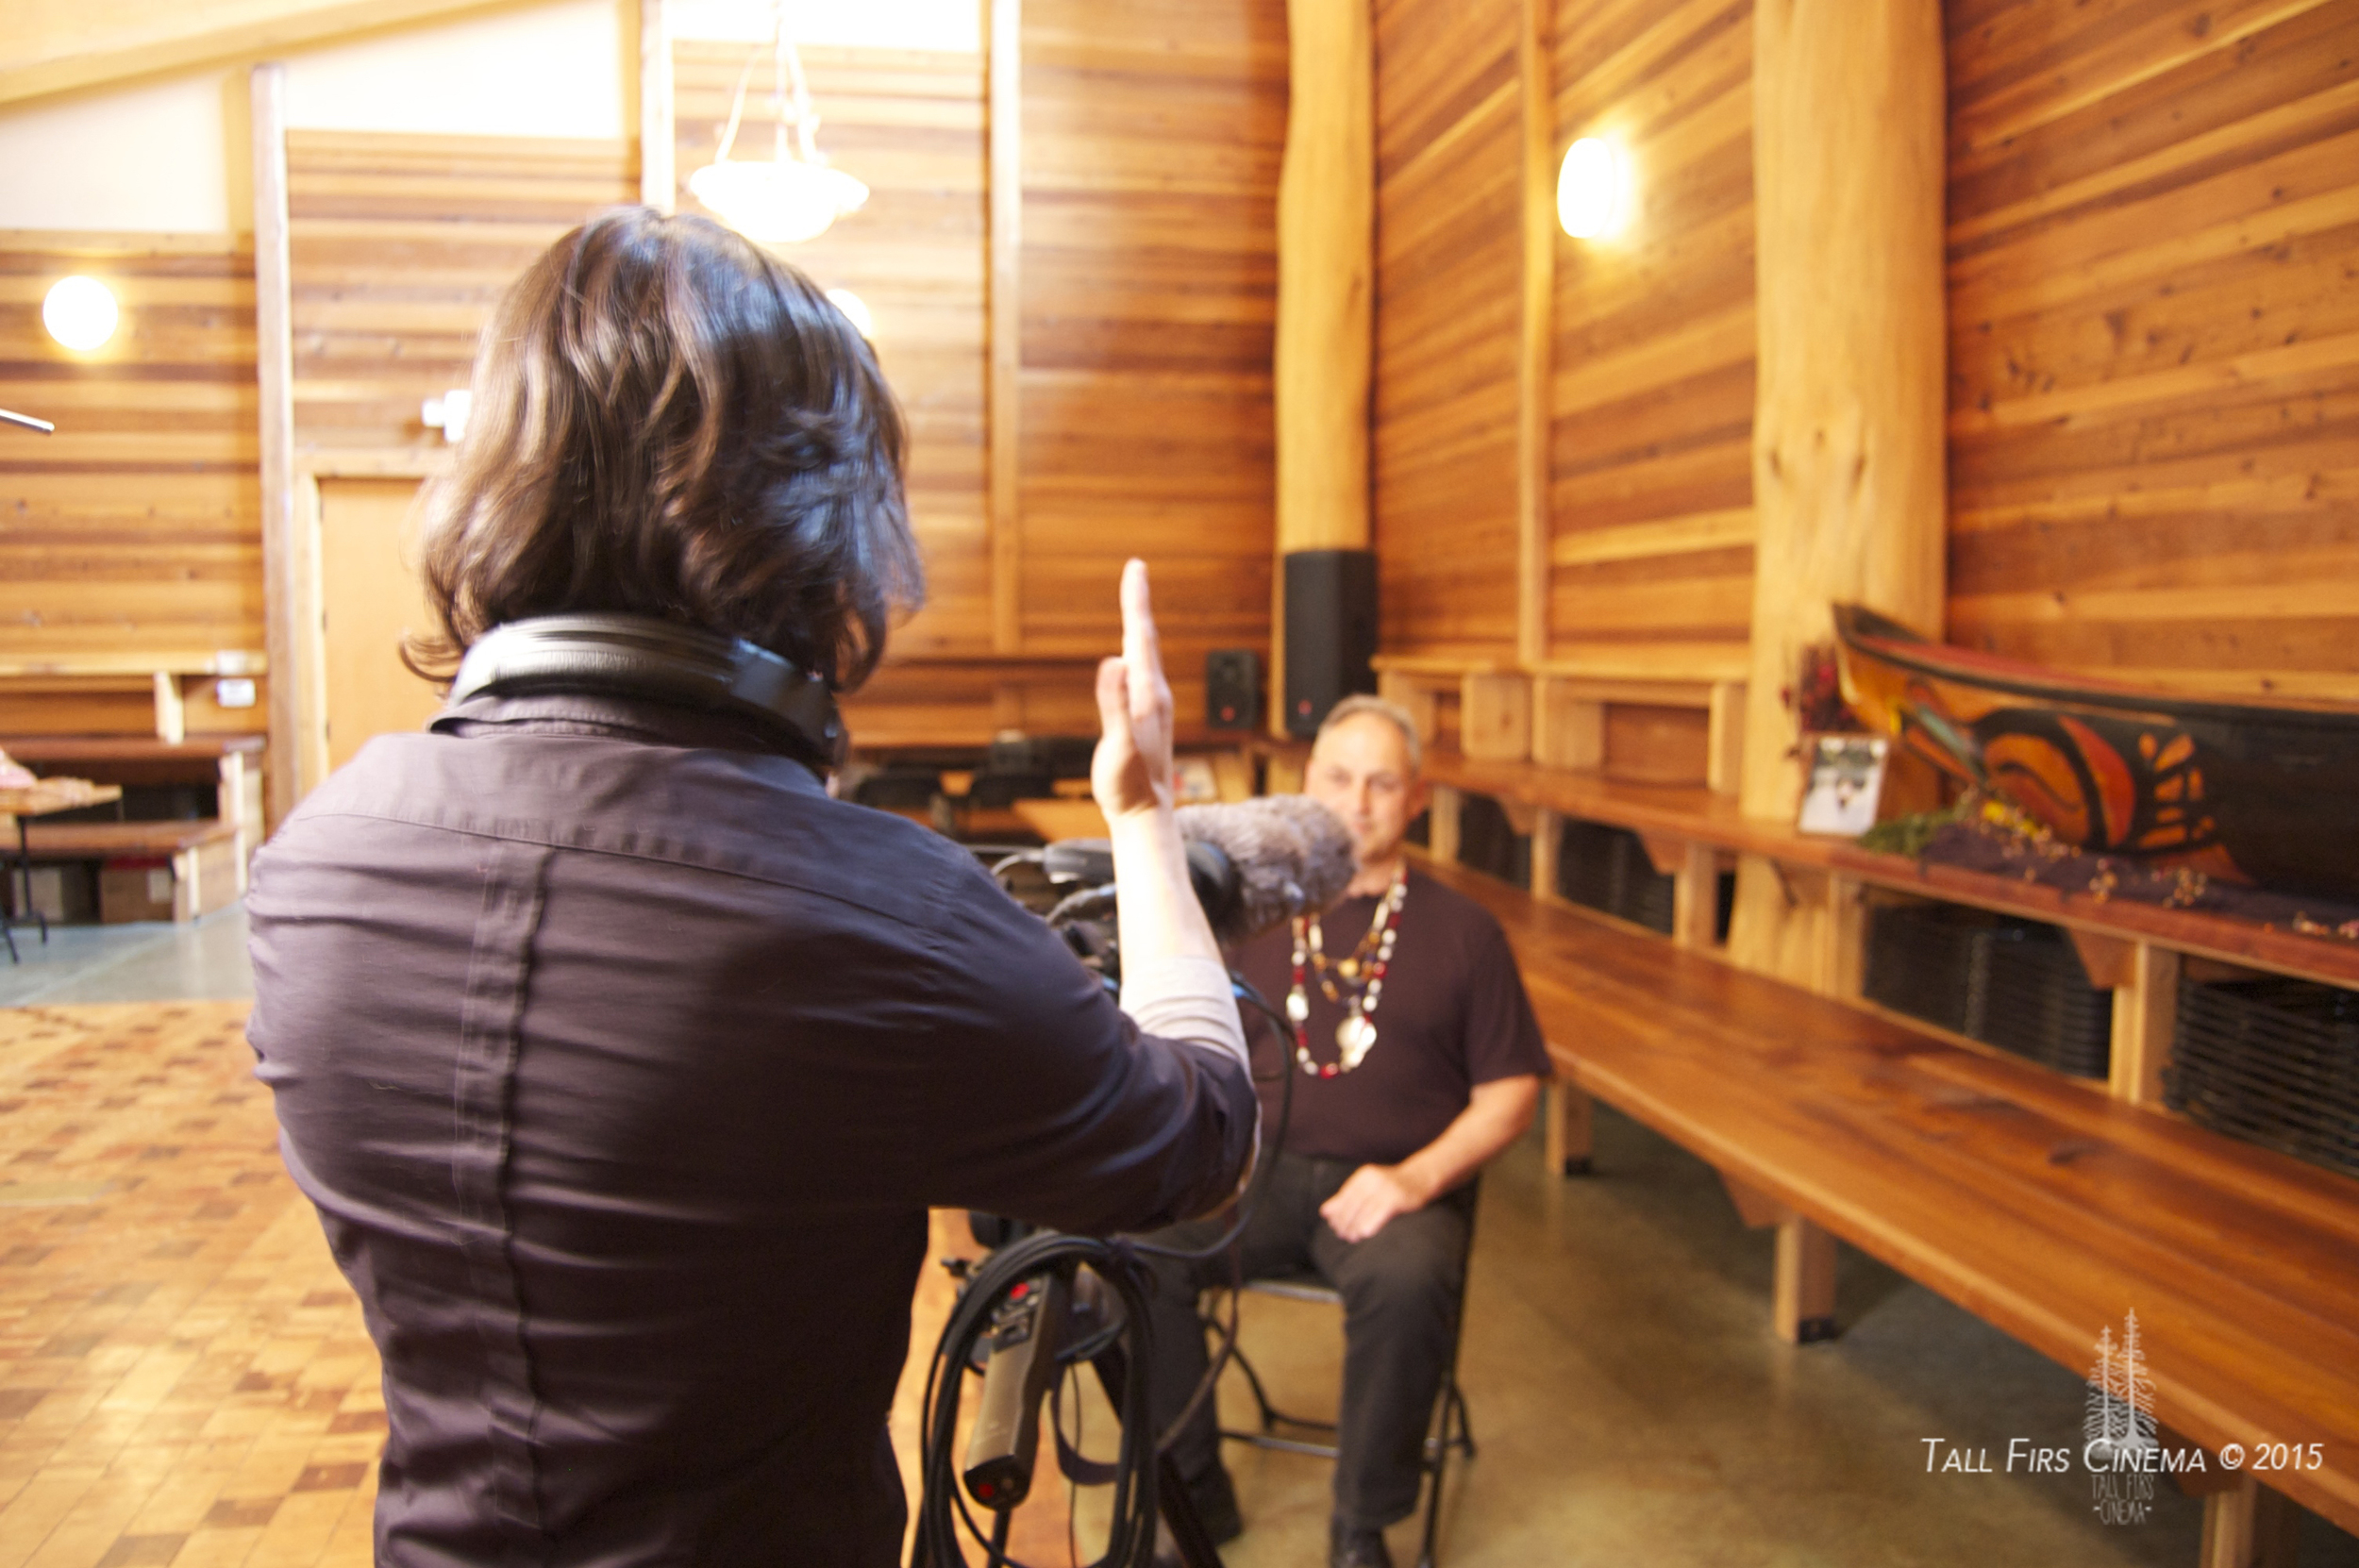 Filming Ken Workman, 4th generation great-grandson of Chief Seattle and a member of the Duwamish Tribal Council. Apart from telling us about the history of the tribe and their relationship to the land, Ken has great stories about his motocross racing days!